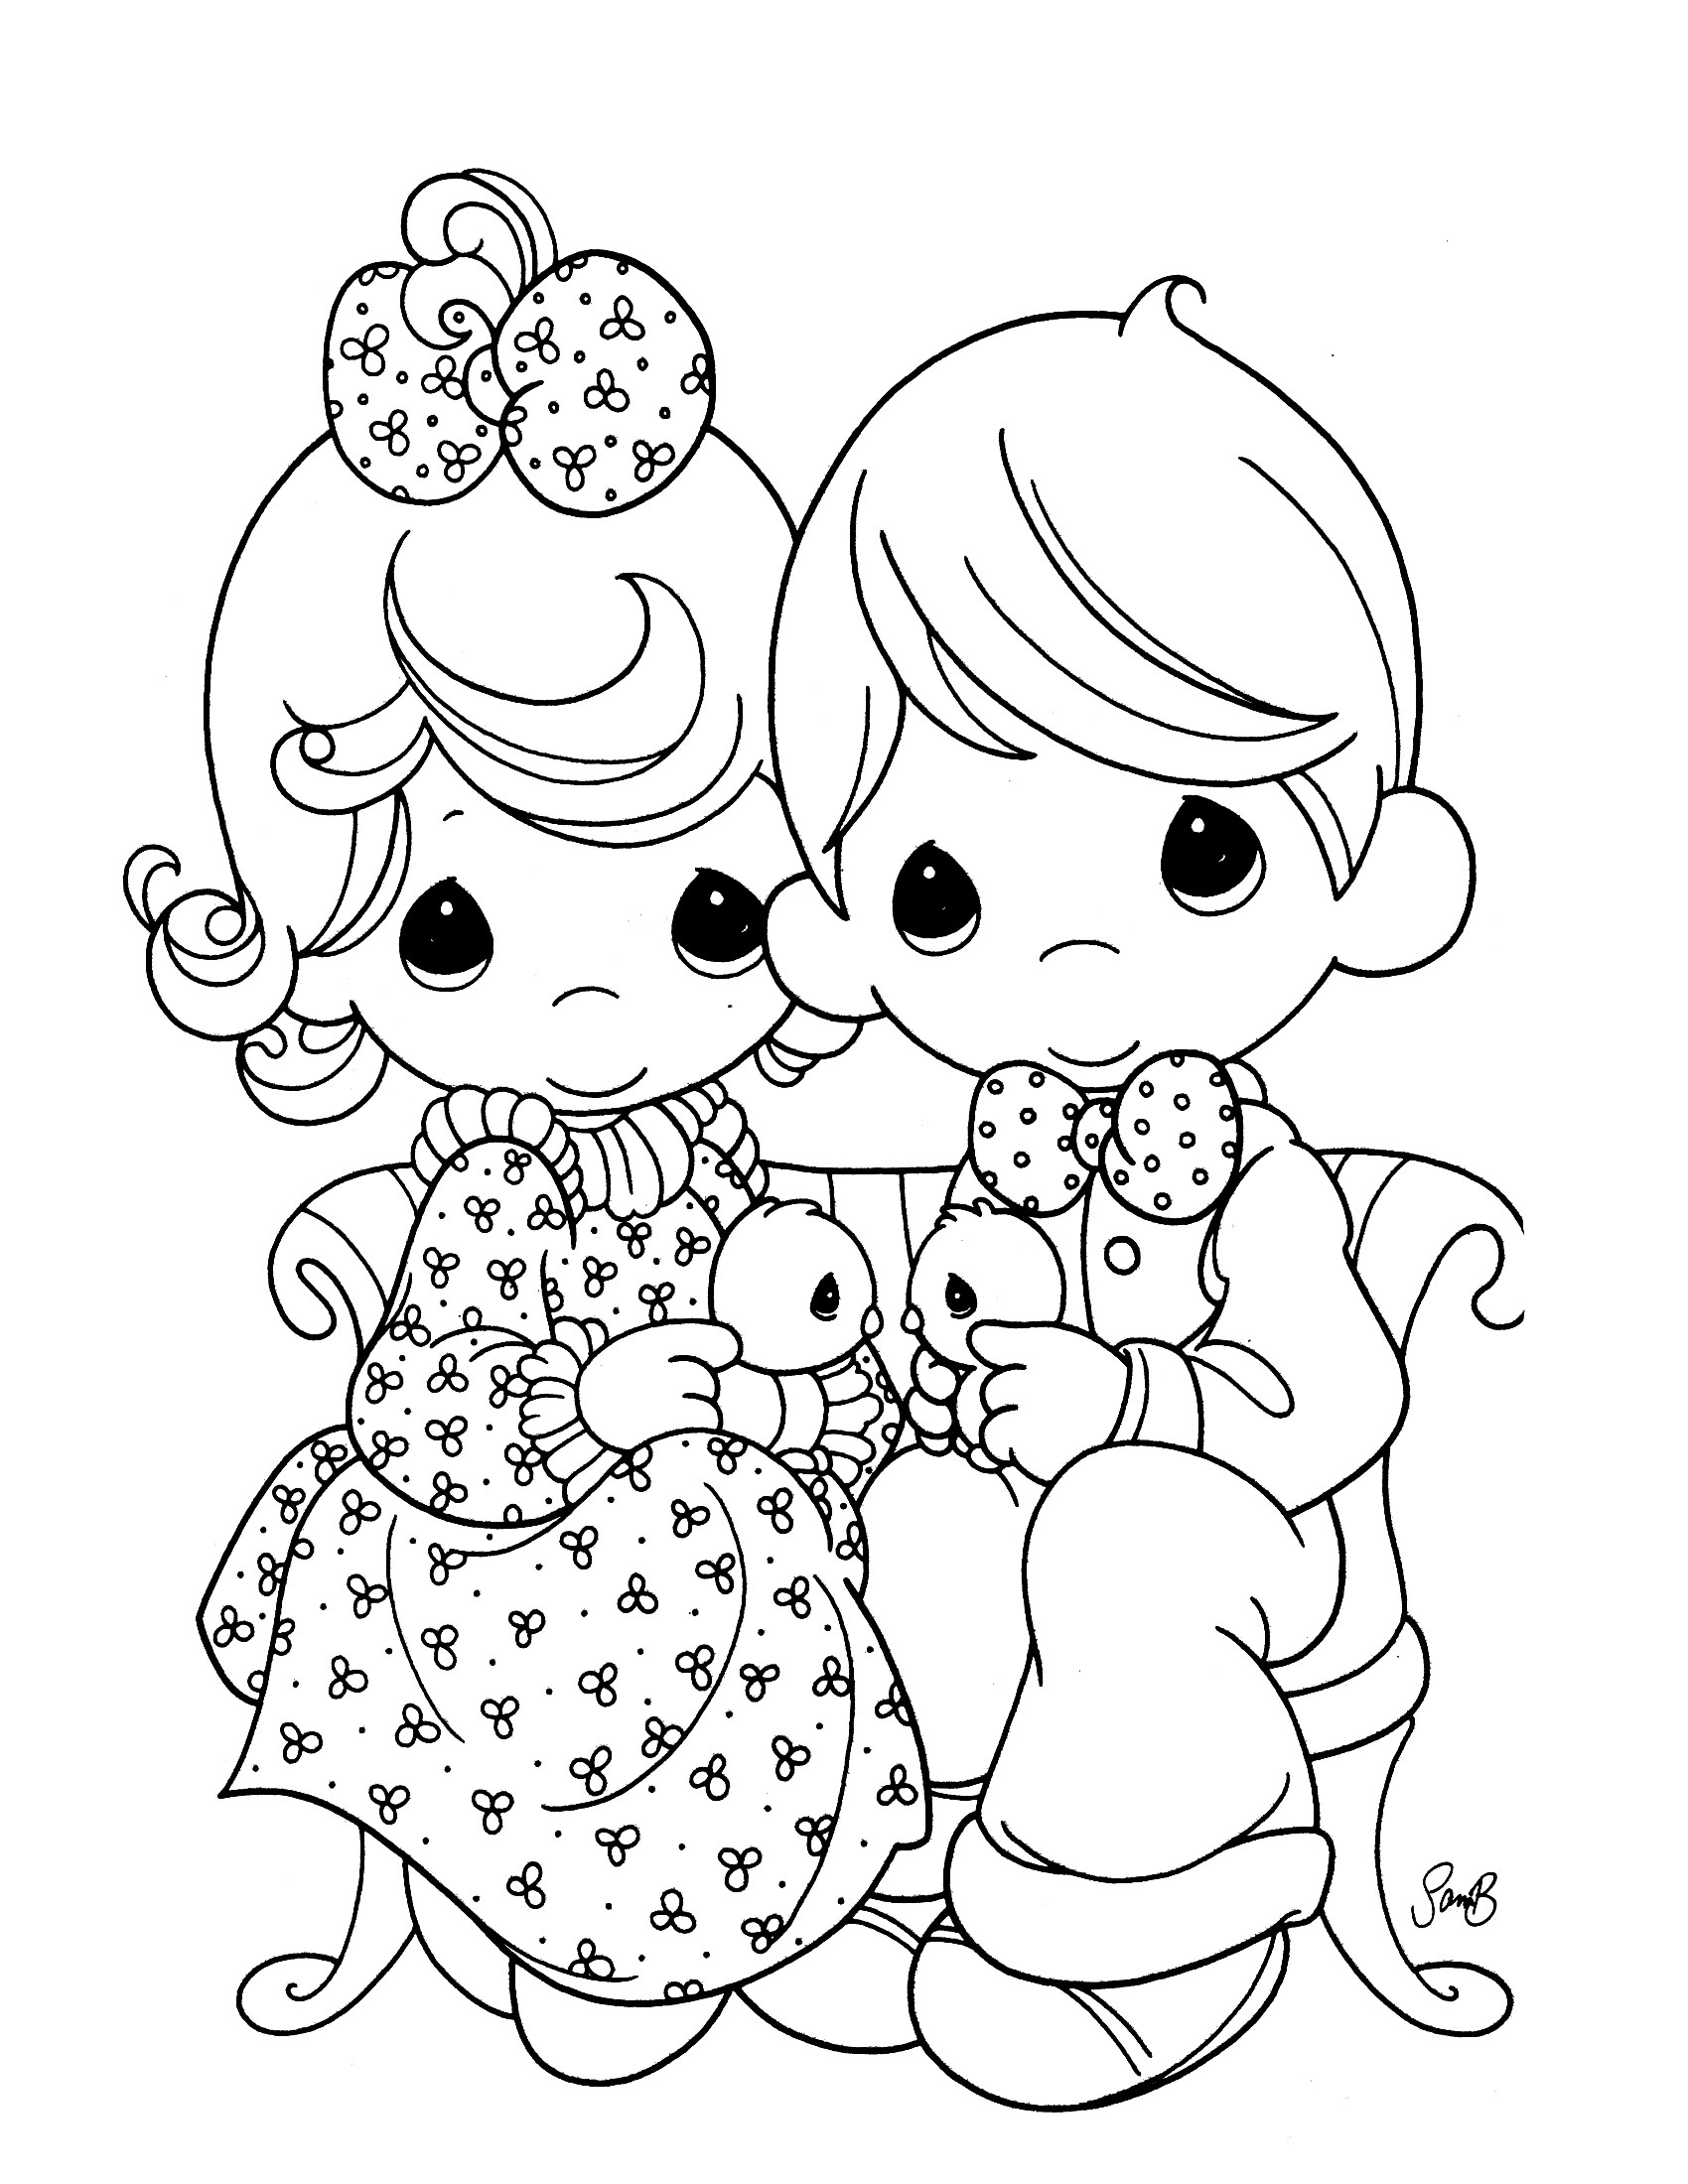 Precious Moments Baby Coloring Pages Ba Precious Moments Coloring Pages Top Coloring